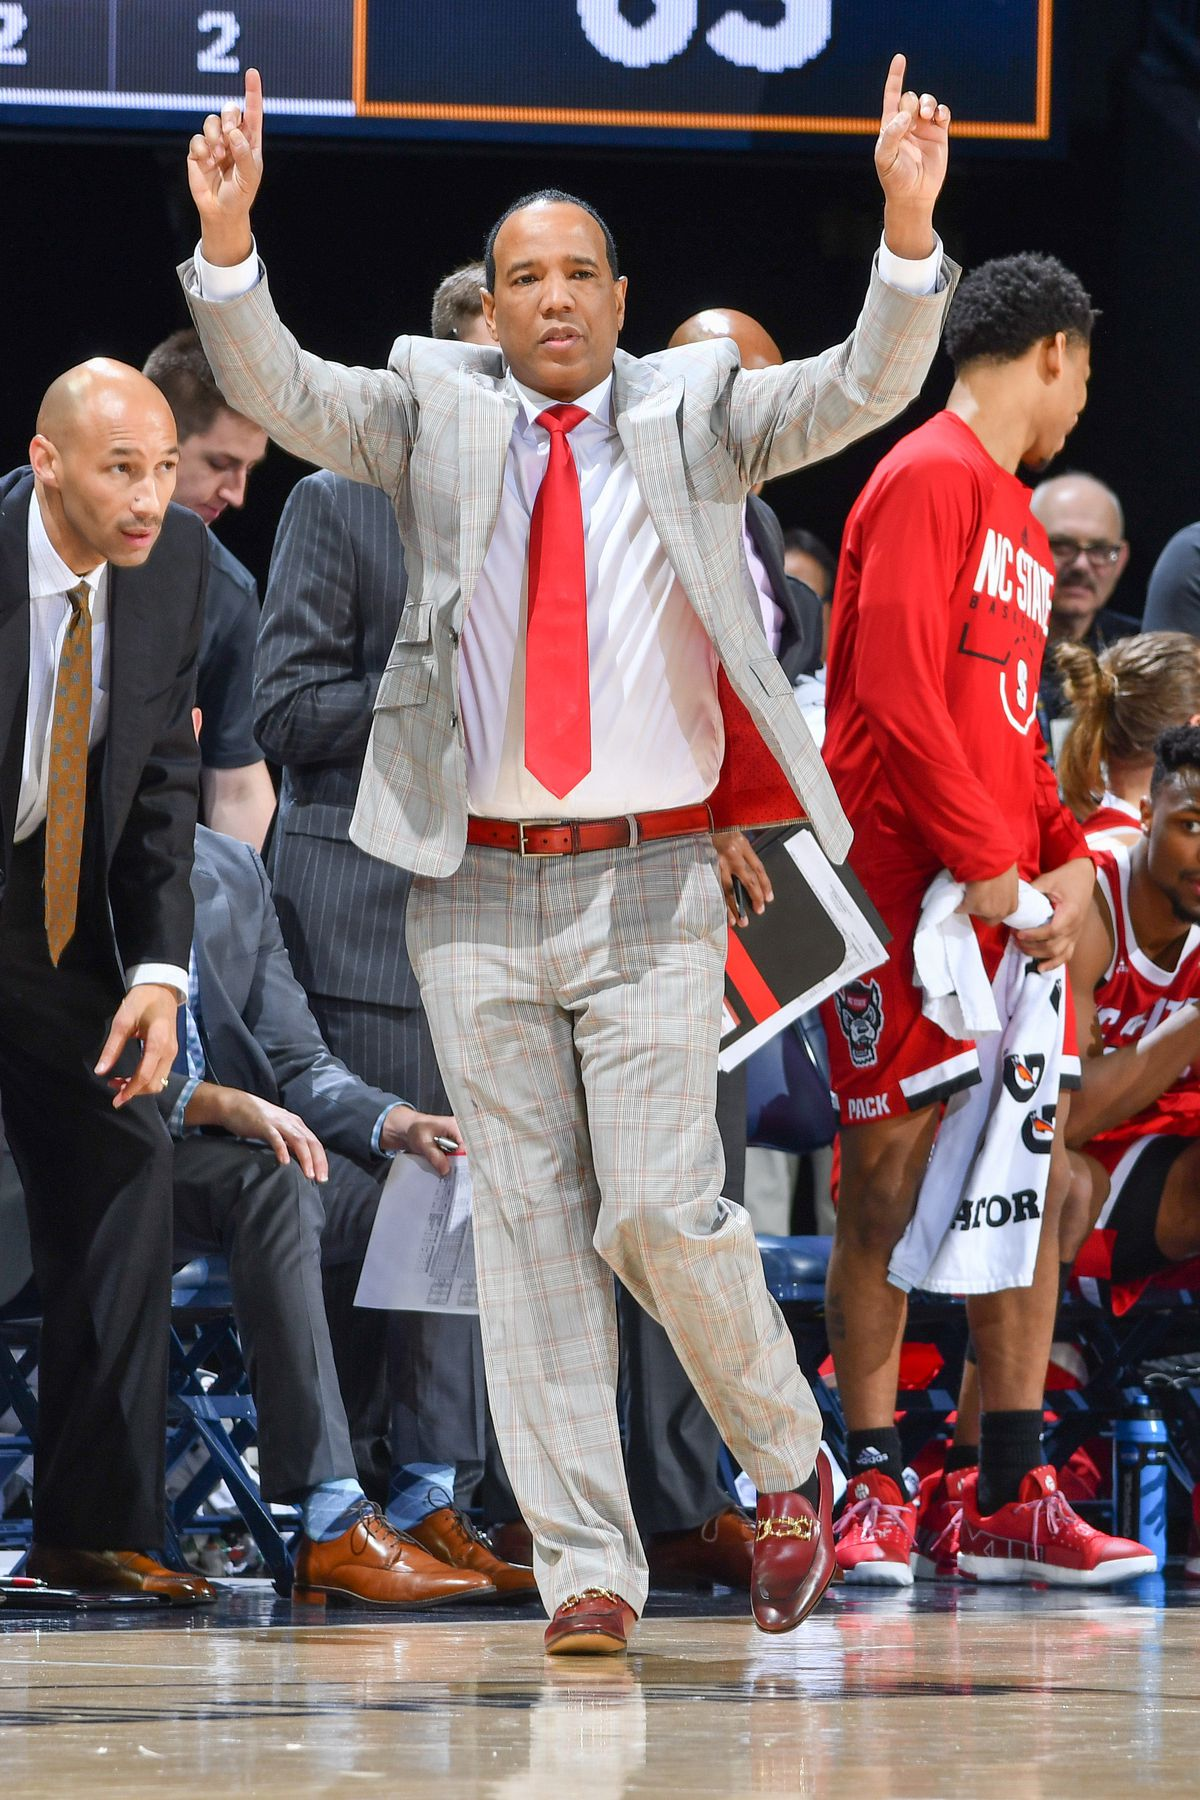 NCAA Basketball: N.C. State at Notre Dame